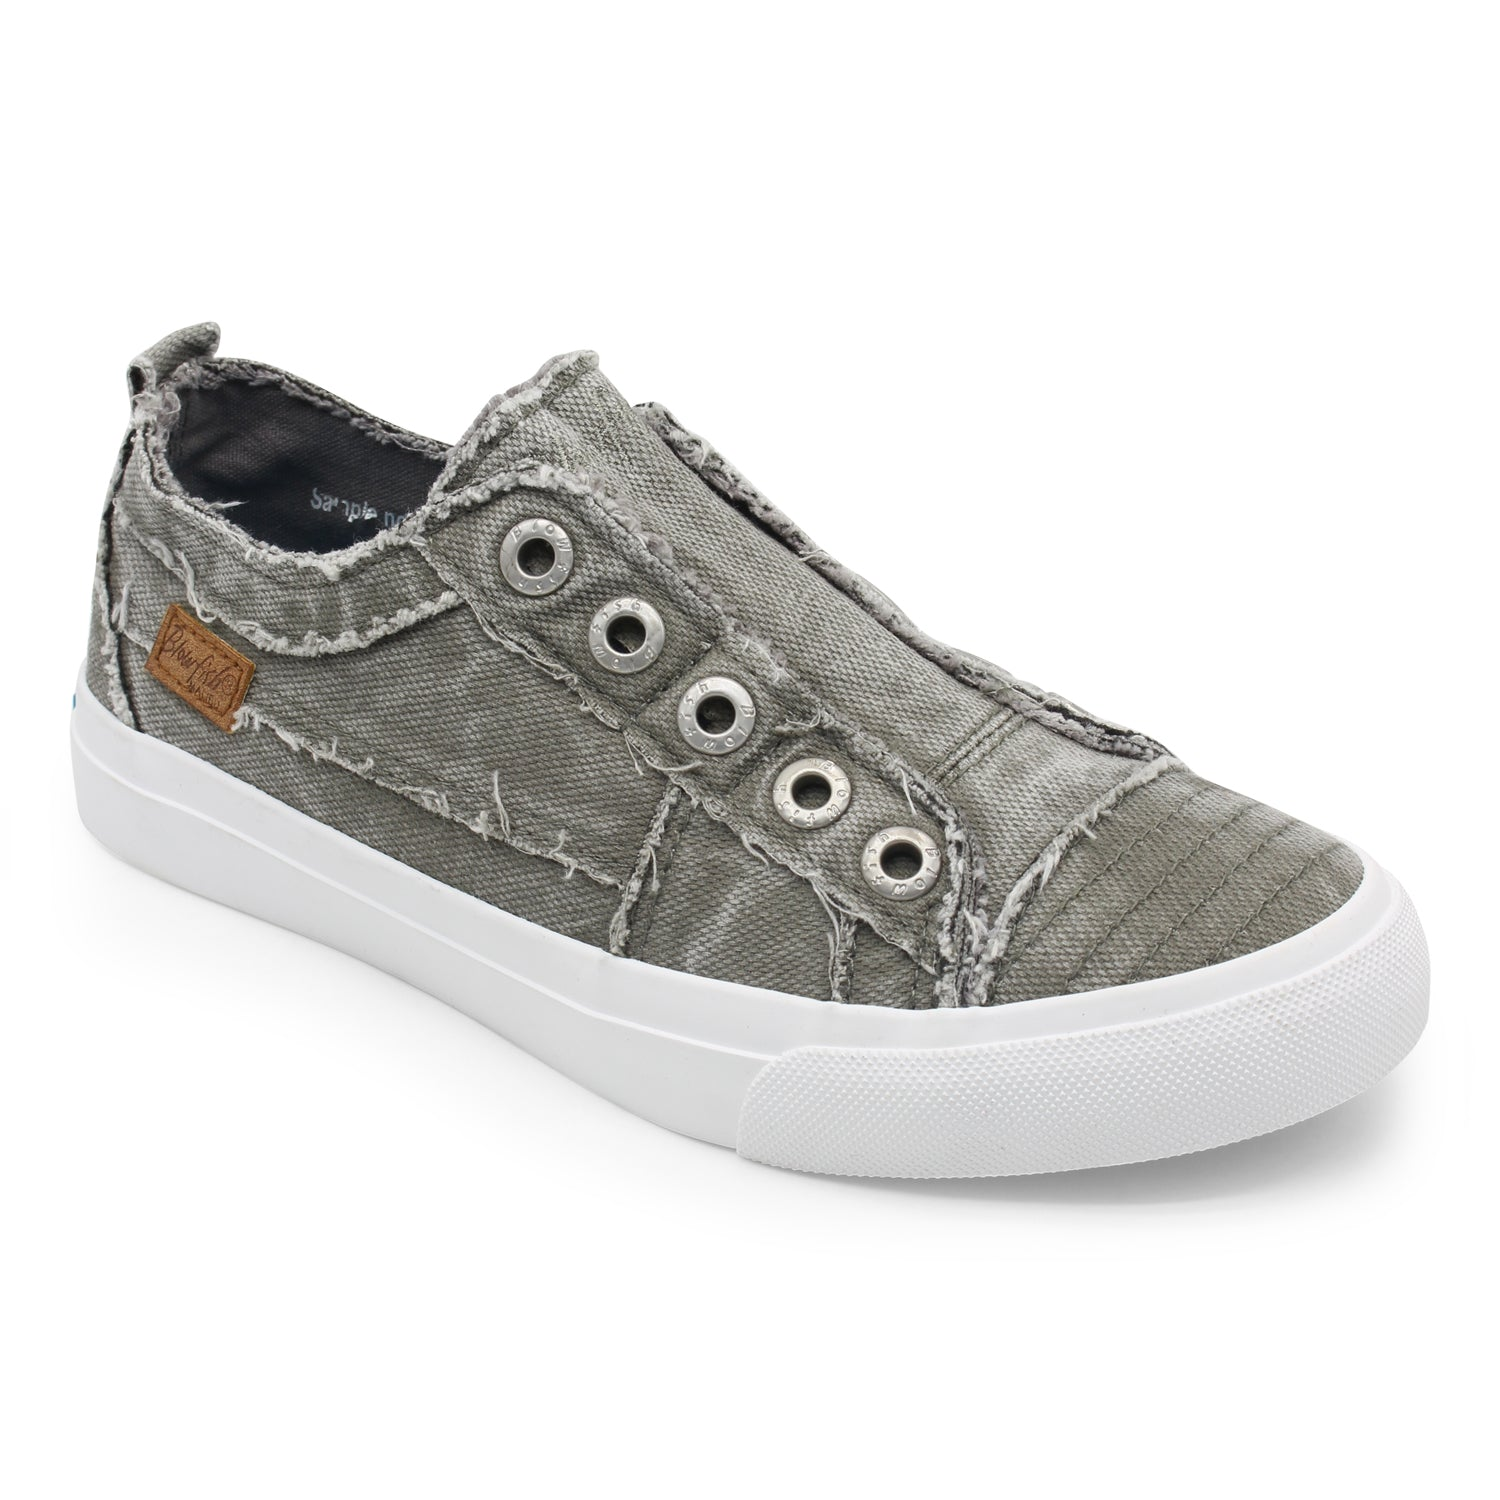 'Blowfish Malibu' Women's Play Slip On - Sweet Grey